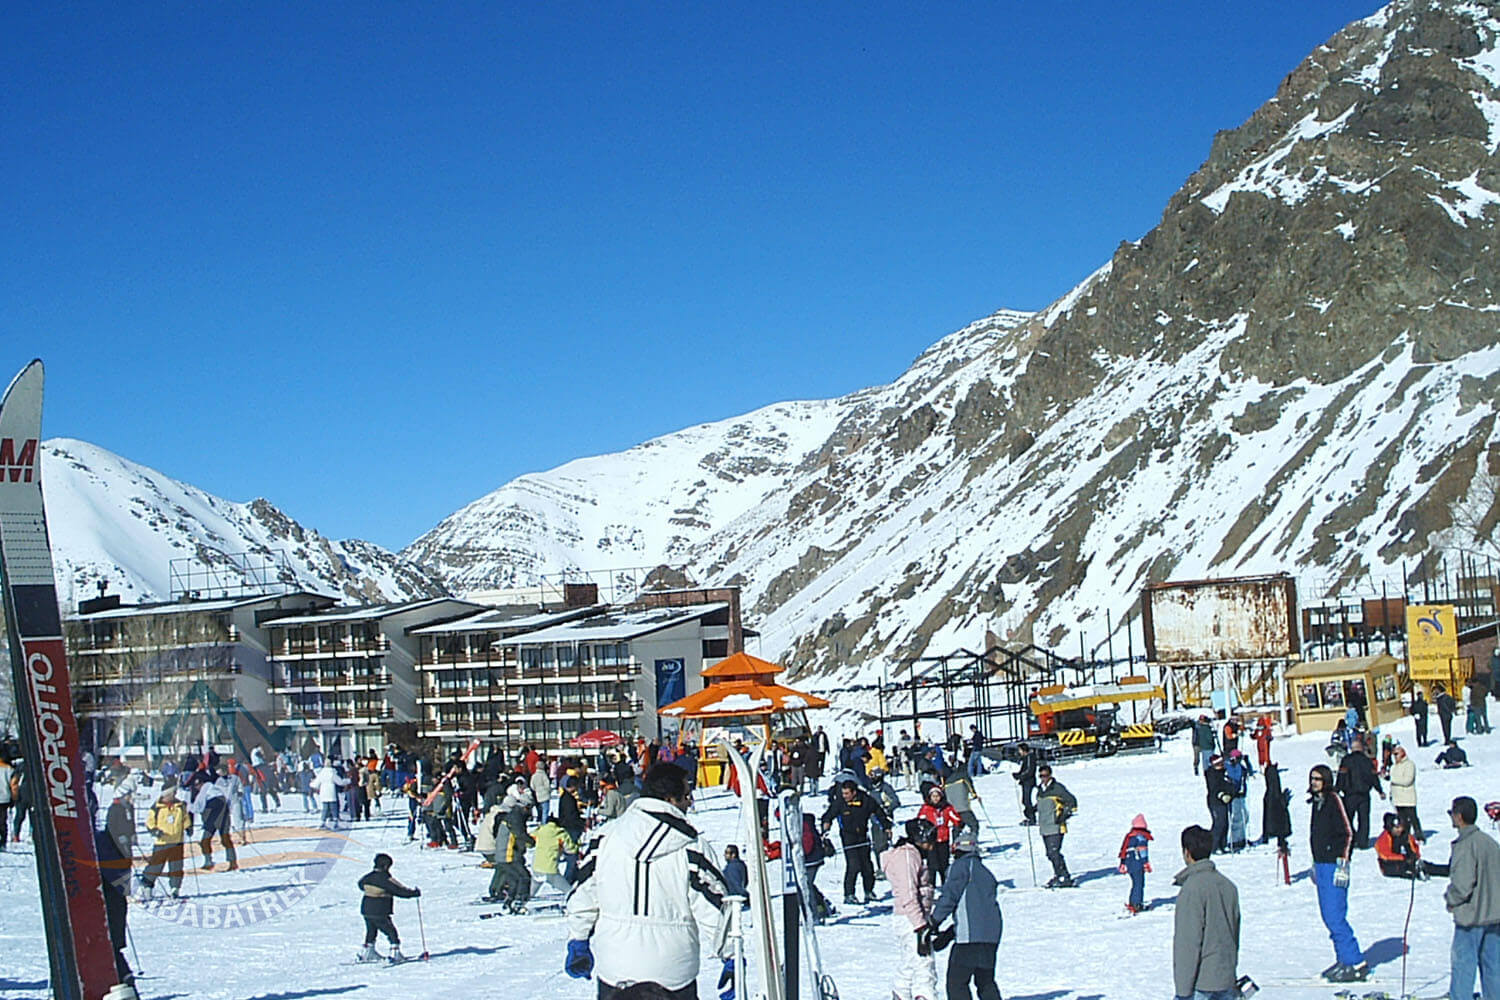 Alibabatrek Iran tours Iran tour packages Skiing in iran ski resort Iran Cultural tour Dizin Ski Resort